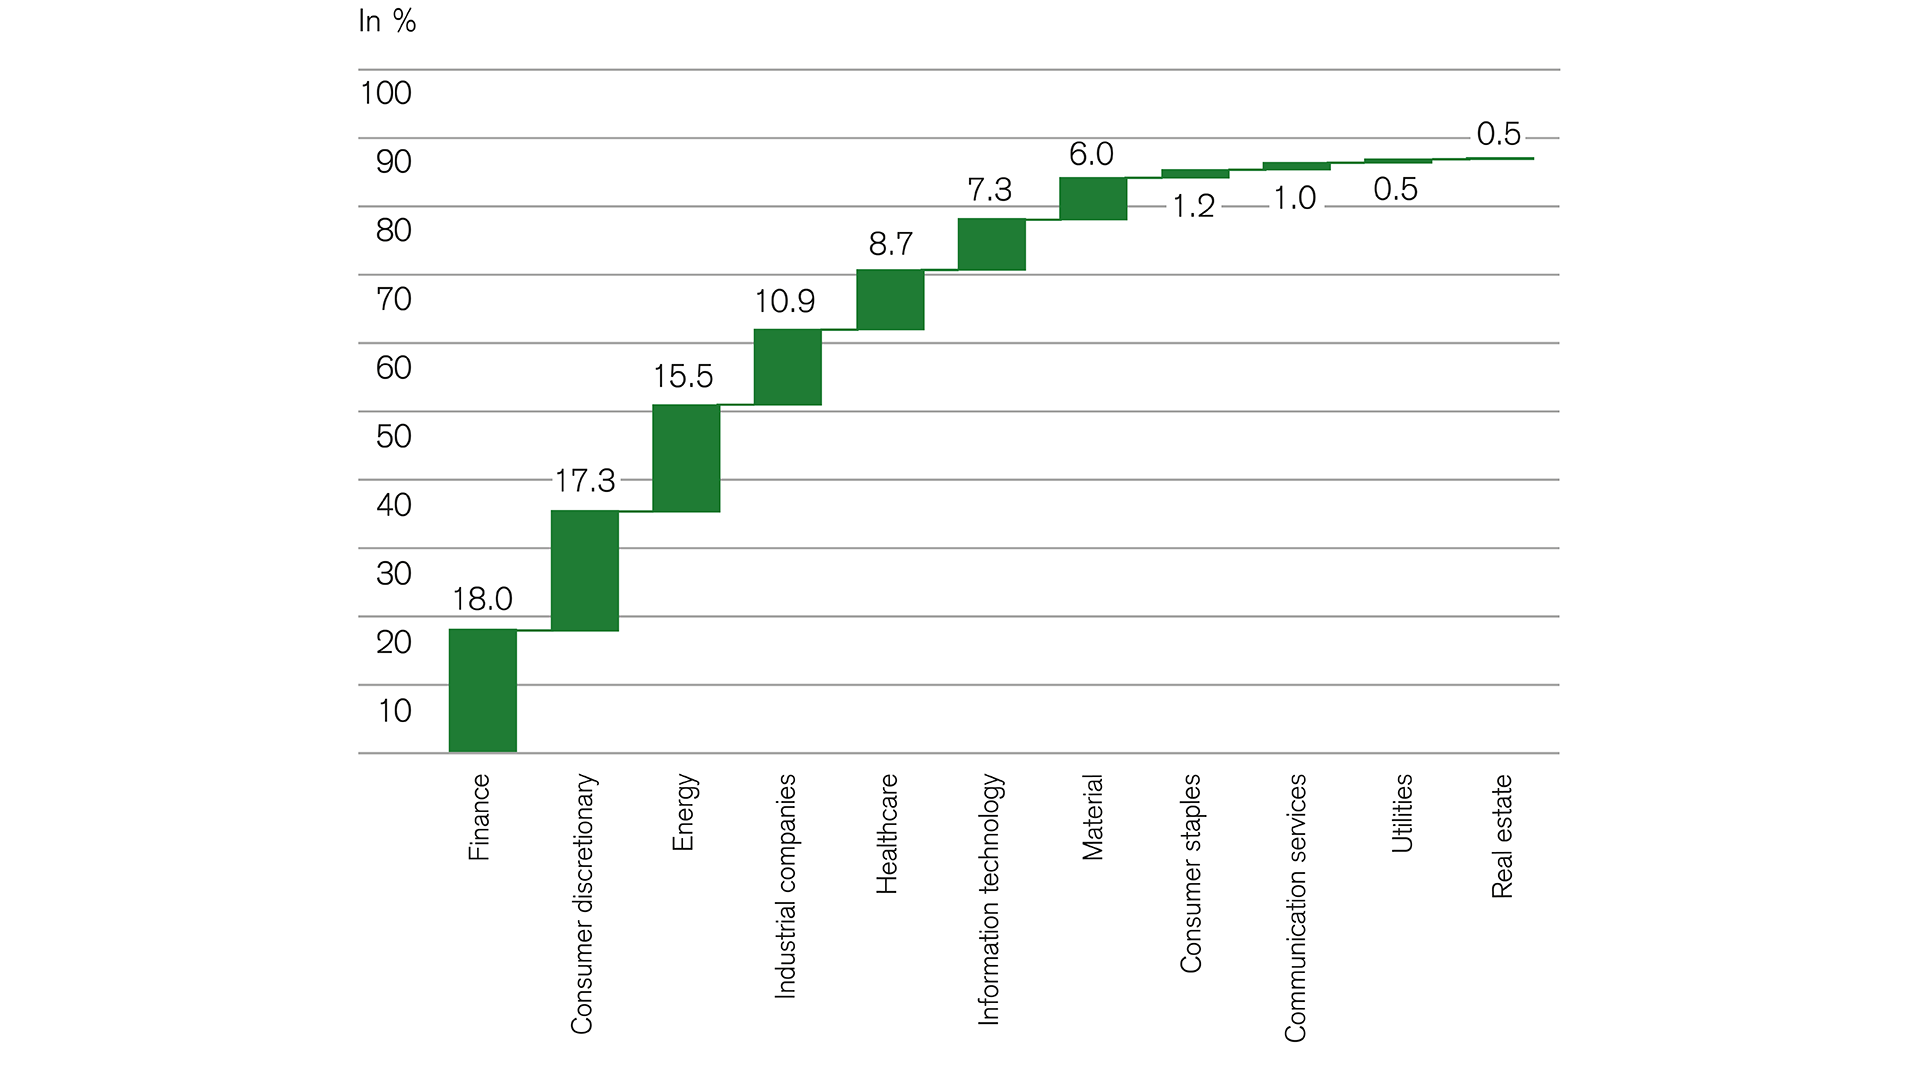 Equities: Expected profit growth contribution by sector